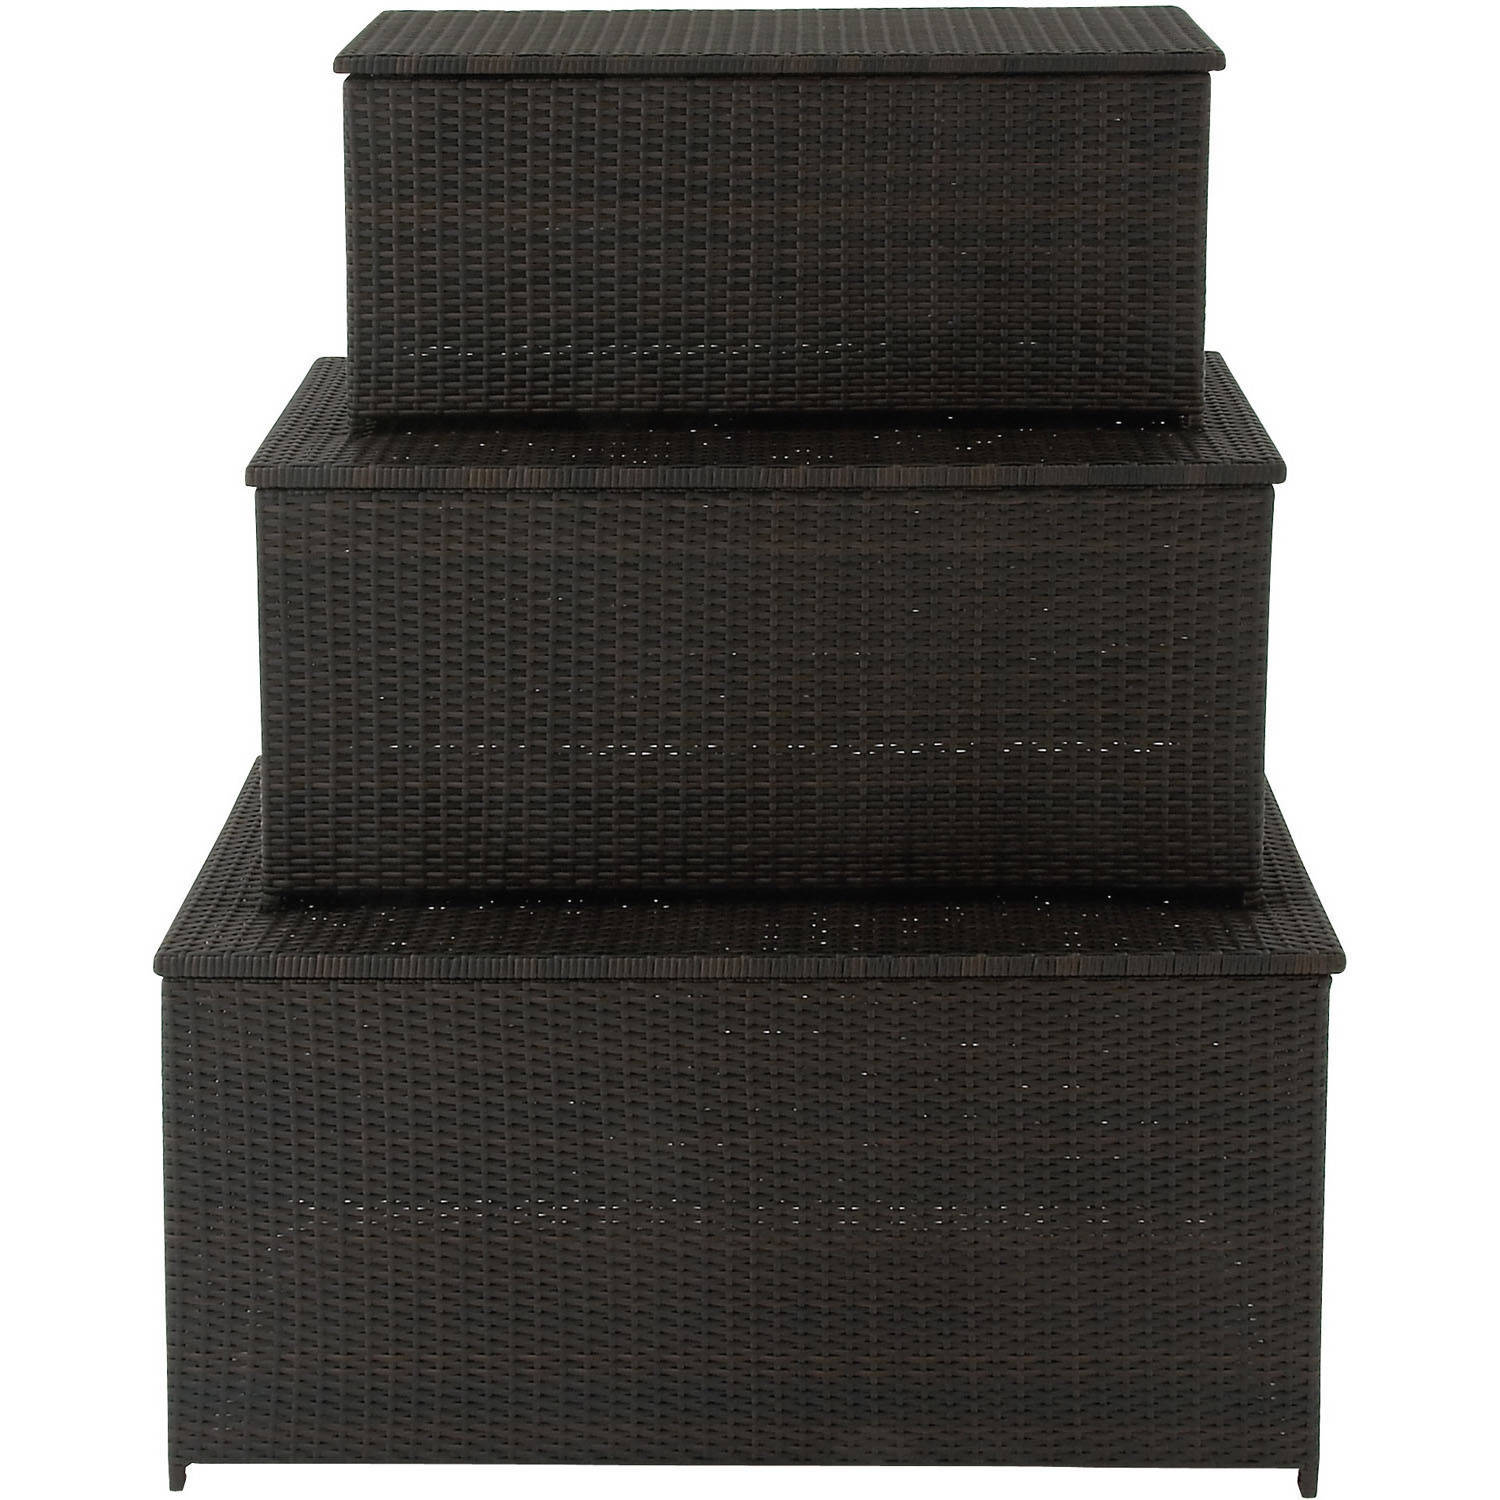 Hanover Outdoor Hanover 3-in-1 Deck Box Set for Outdoor Storage by Hanover Outdoor